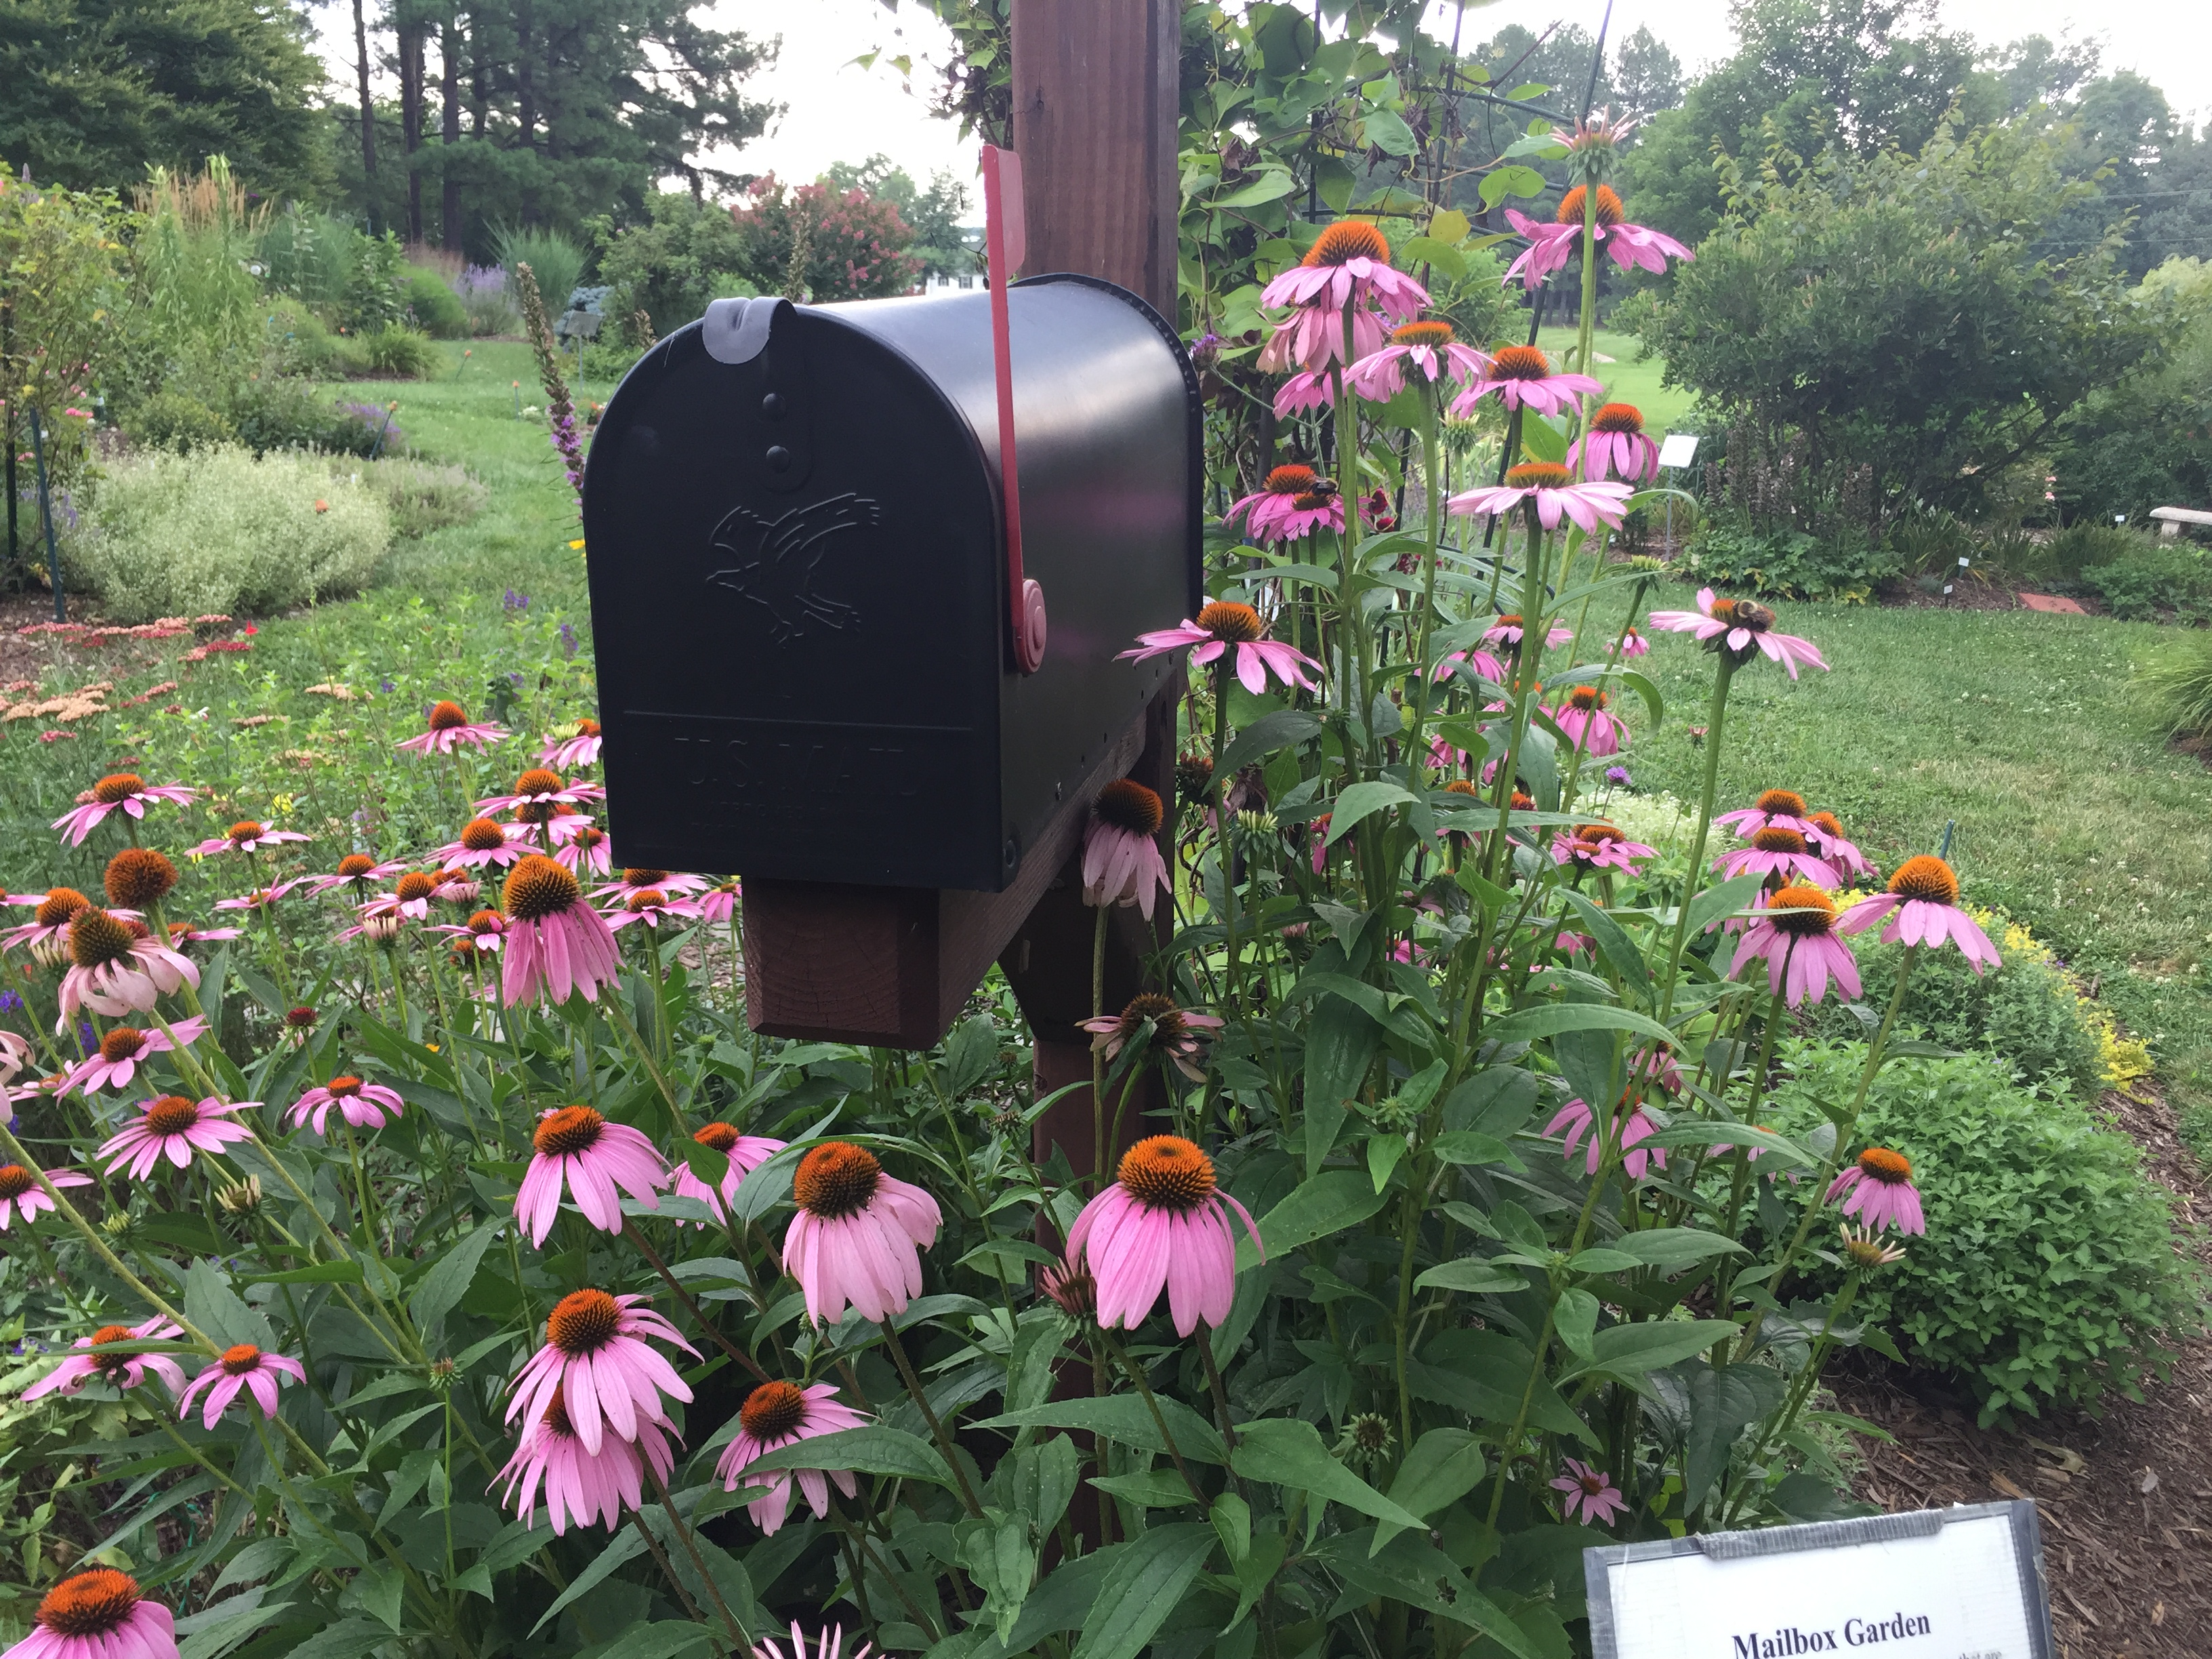 Lynne Lanier Is The Bedleader Of The Mailbox Garden. She Is Our Blogger For  This Week. Thanks Lynne! Its A Beautiful Garden.